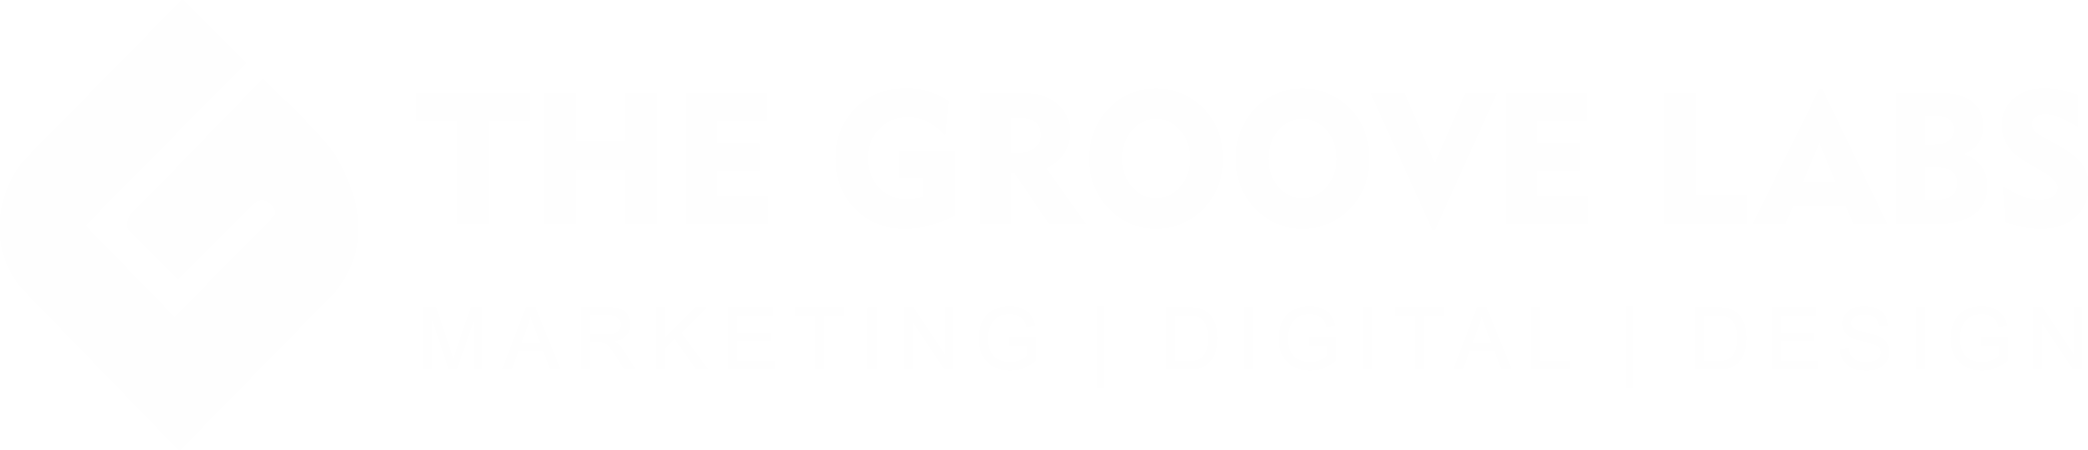 The Groove Labs